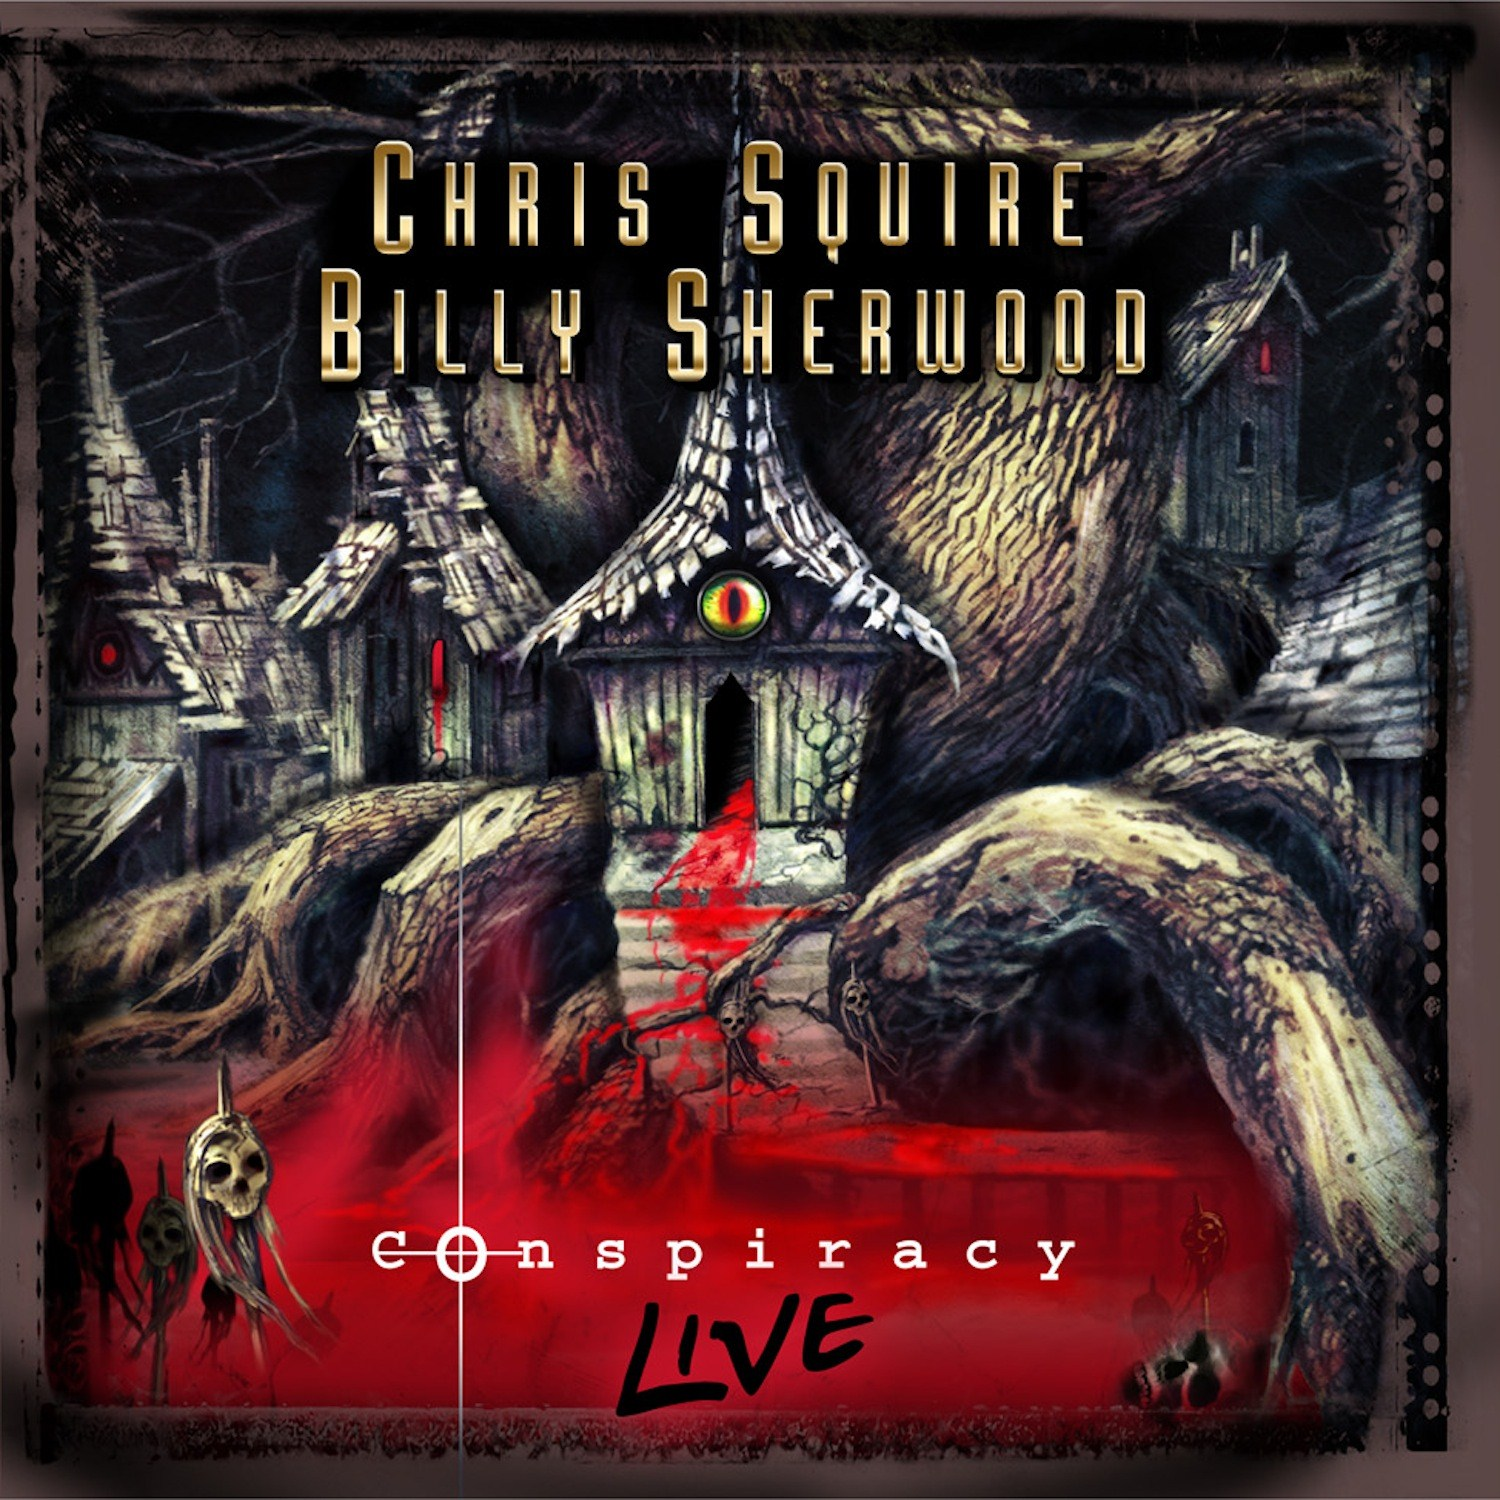 Chris Squire & Billy Sherwood: Conspiracy Live